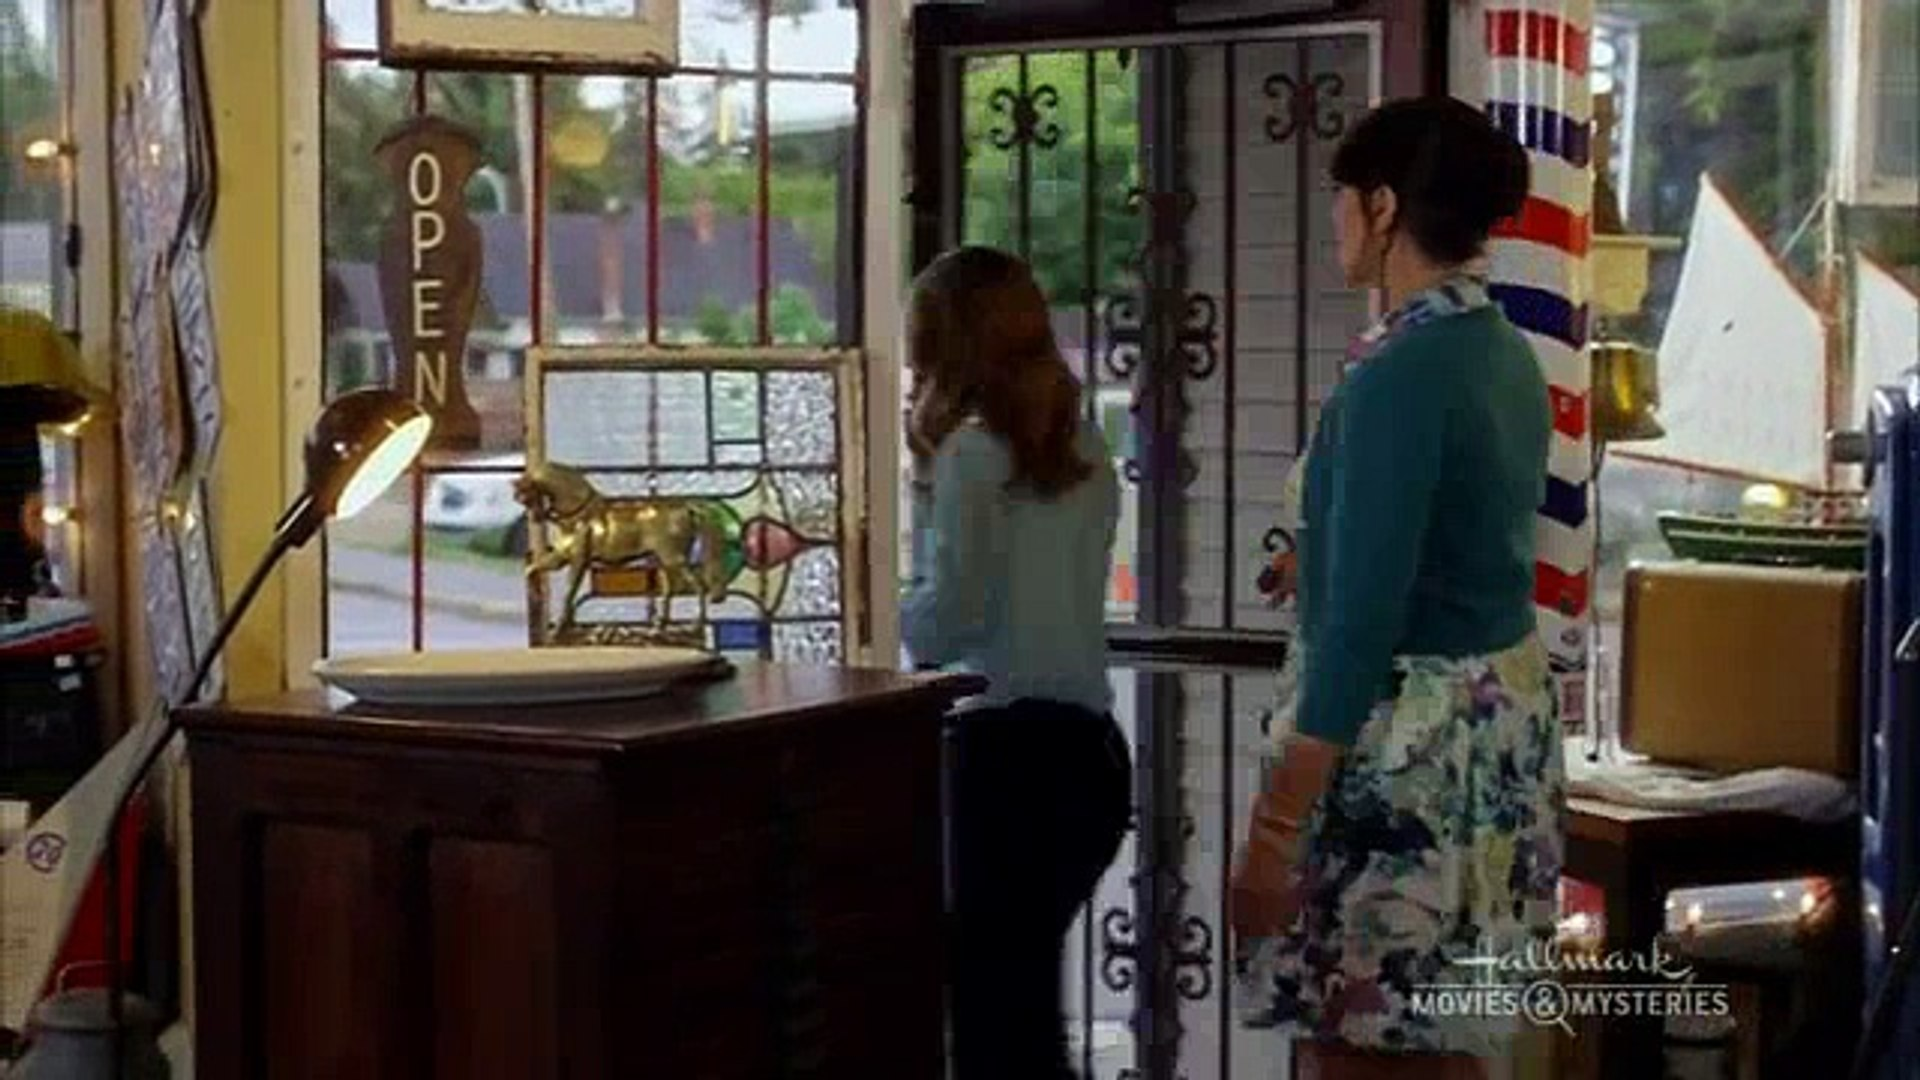 Garage Sale Mystery The Beach garage sale mystery s01e10 the art of murder vol. 01